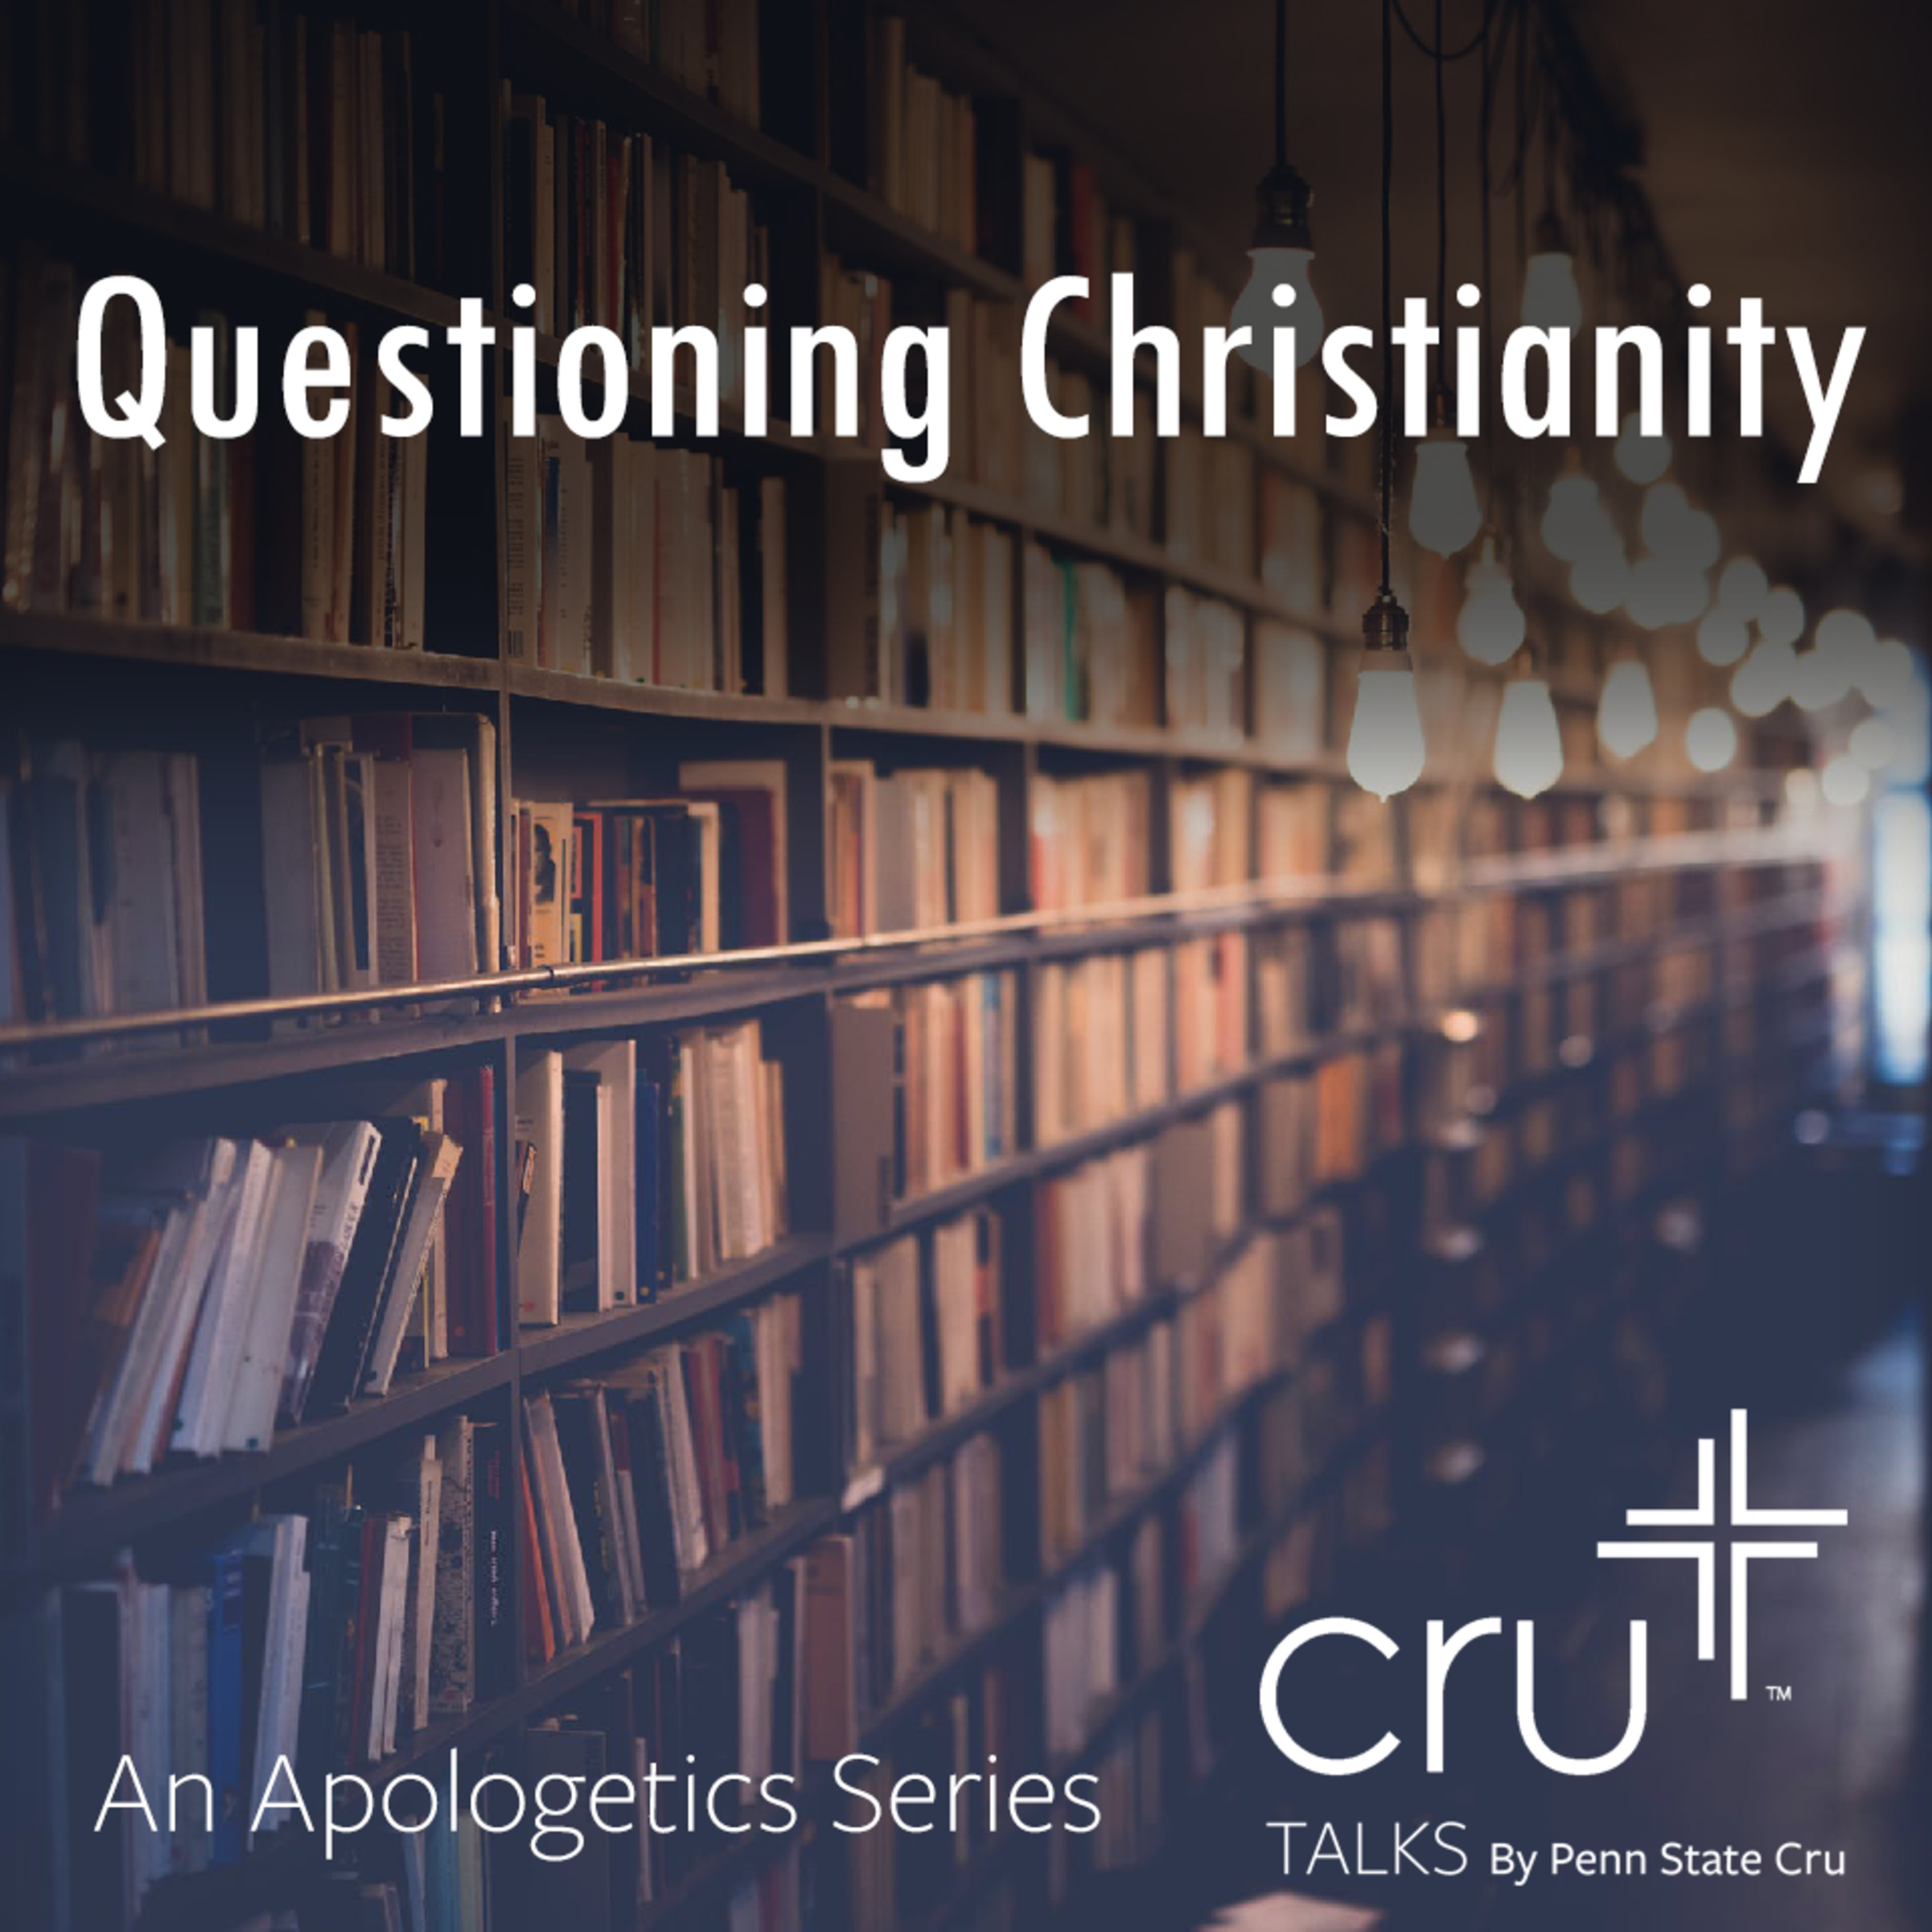 Questioning Christianity: Personal Experience